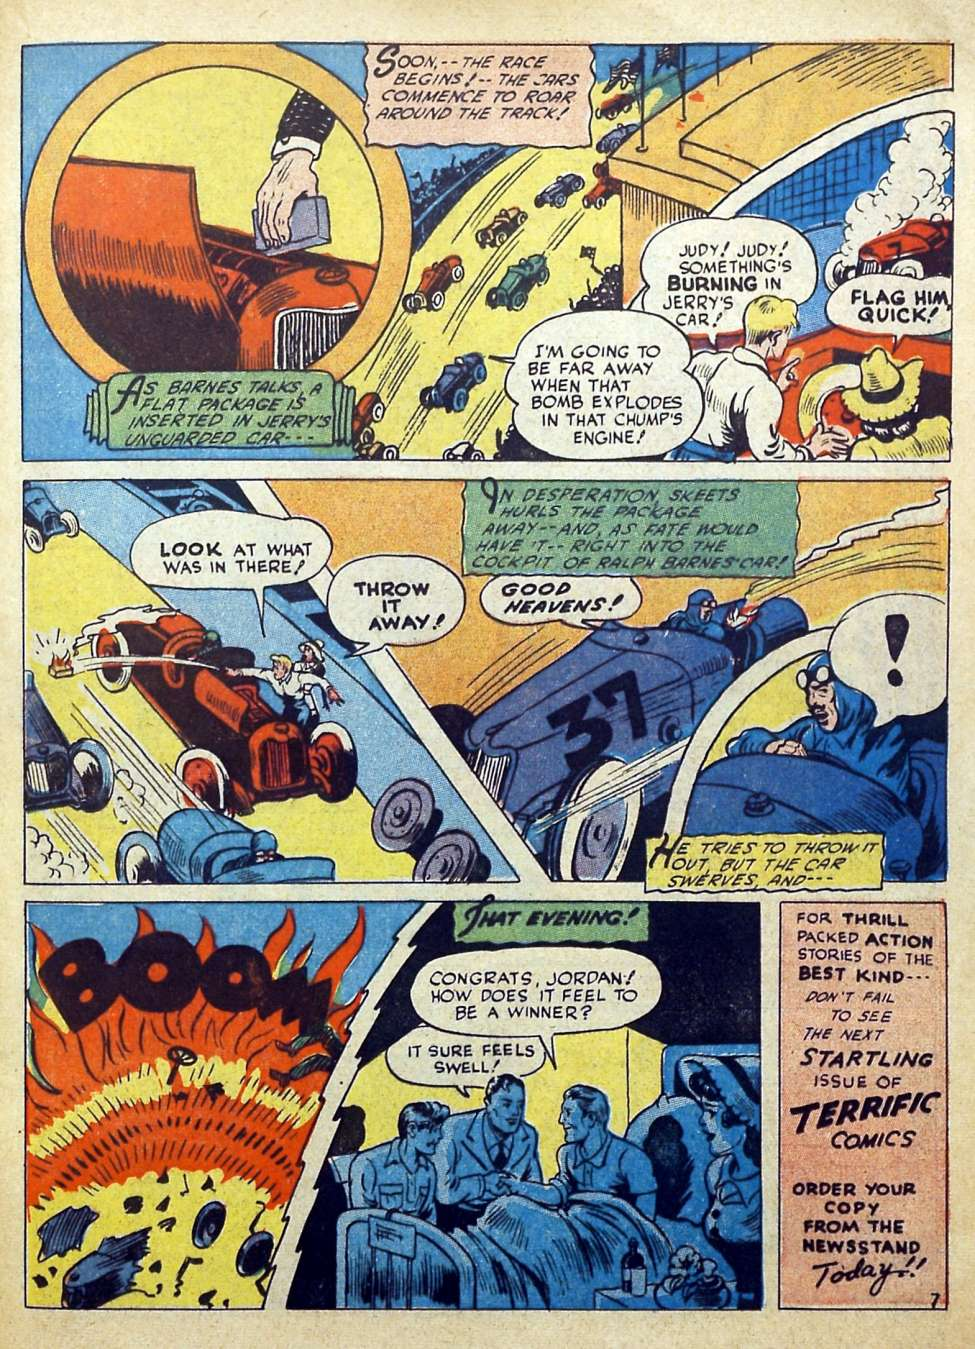 Suspense Comics #3 from 1944 37